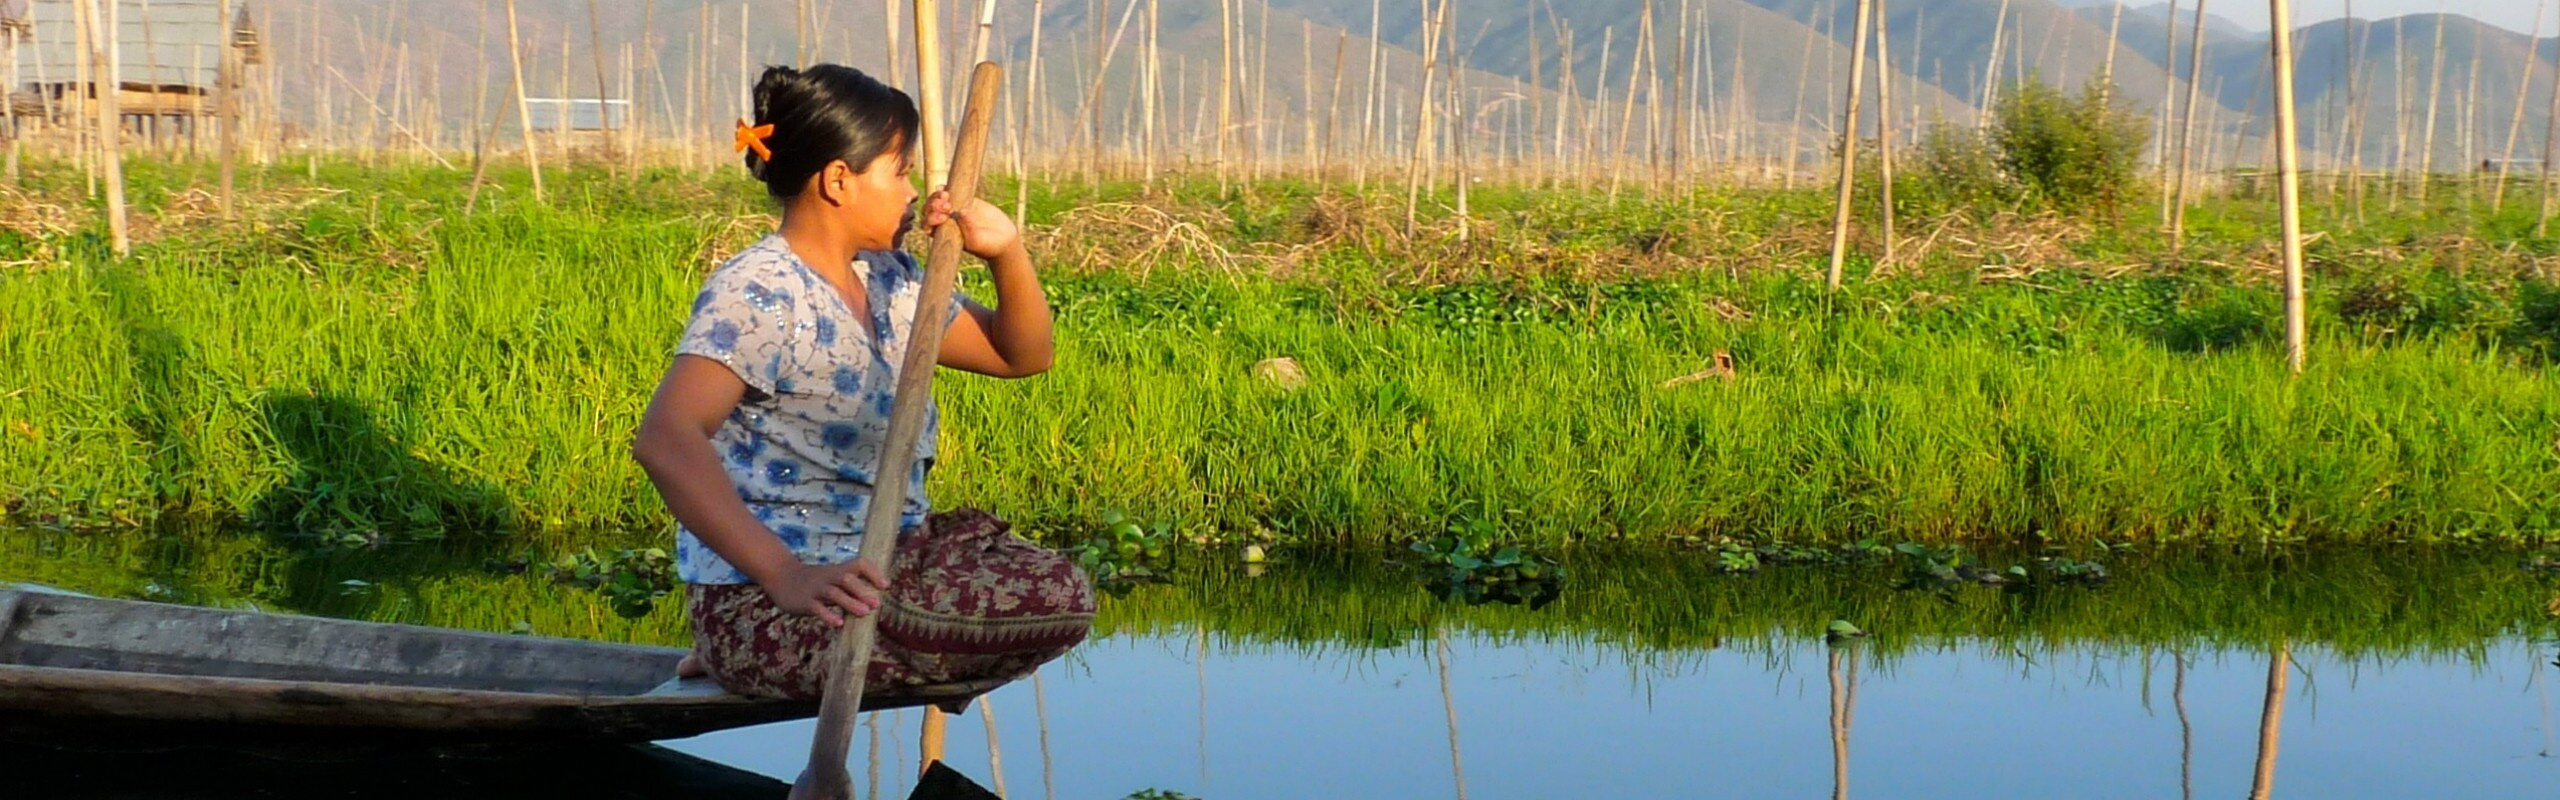 June Weather at Inle Lake